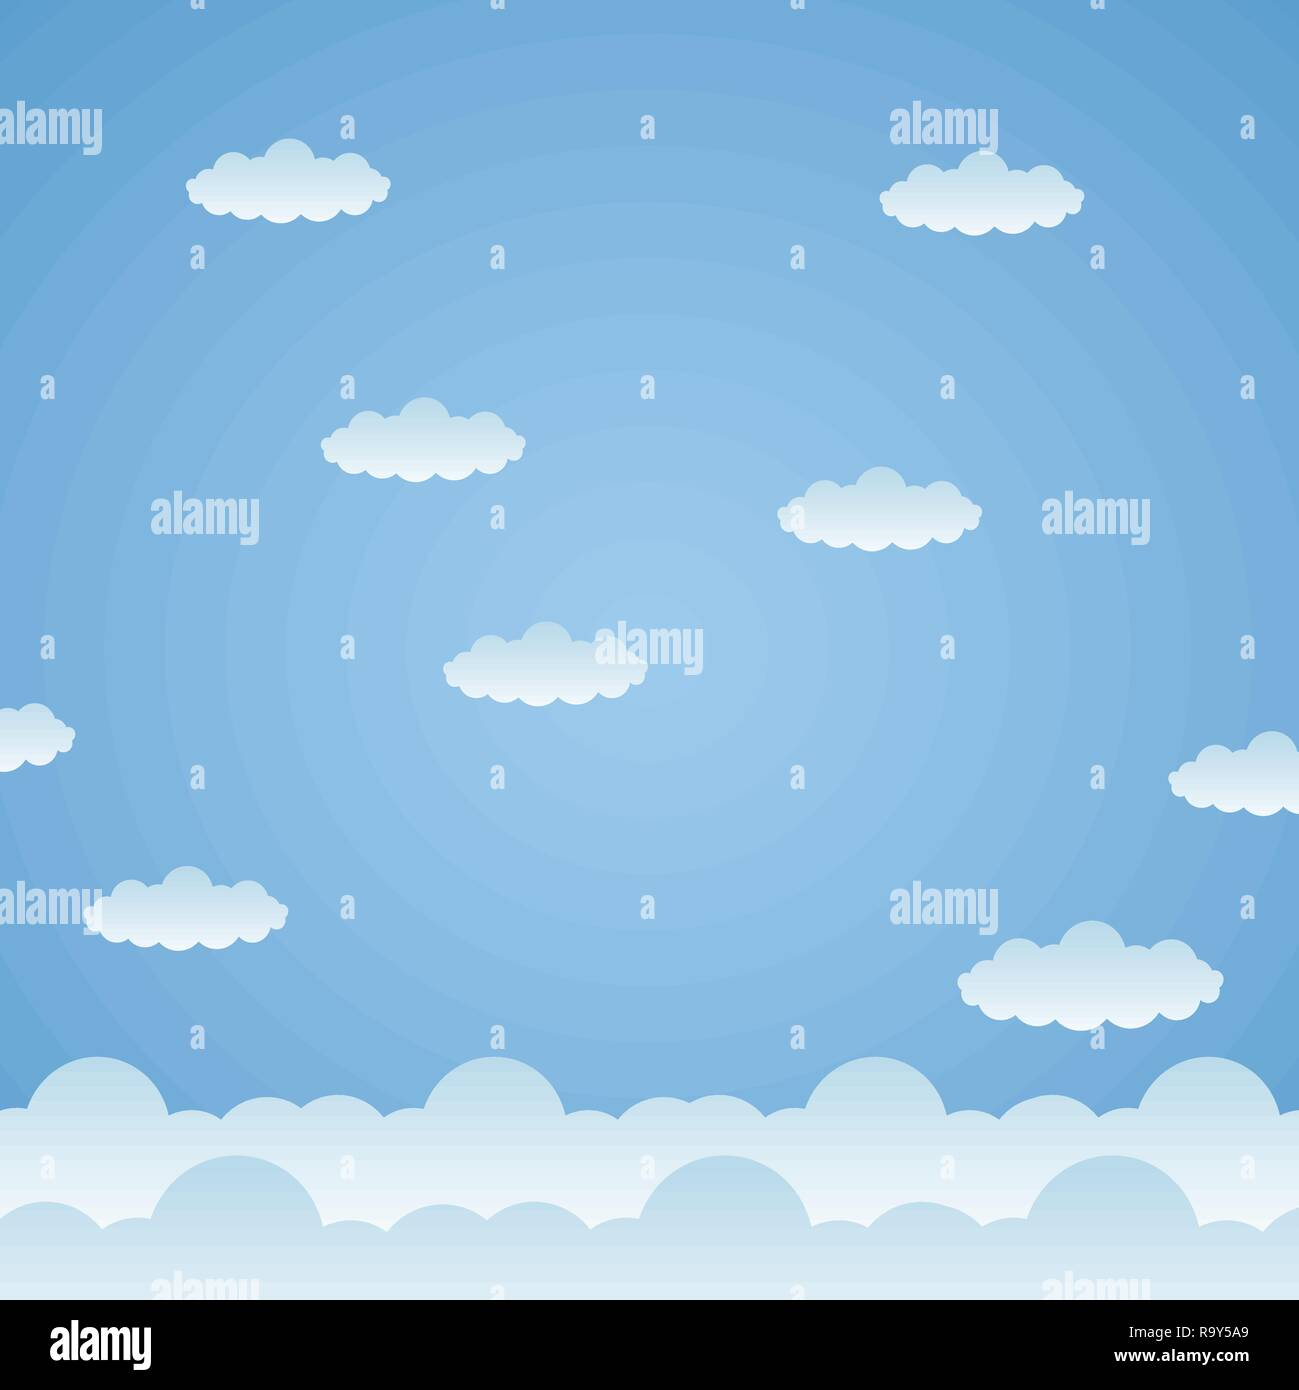 blue clouds sky background - Stock Image